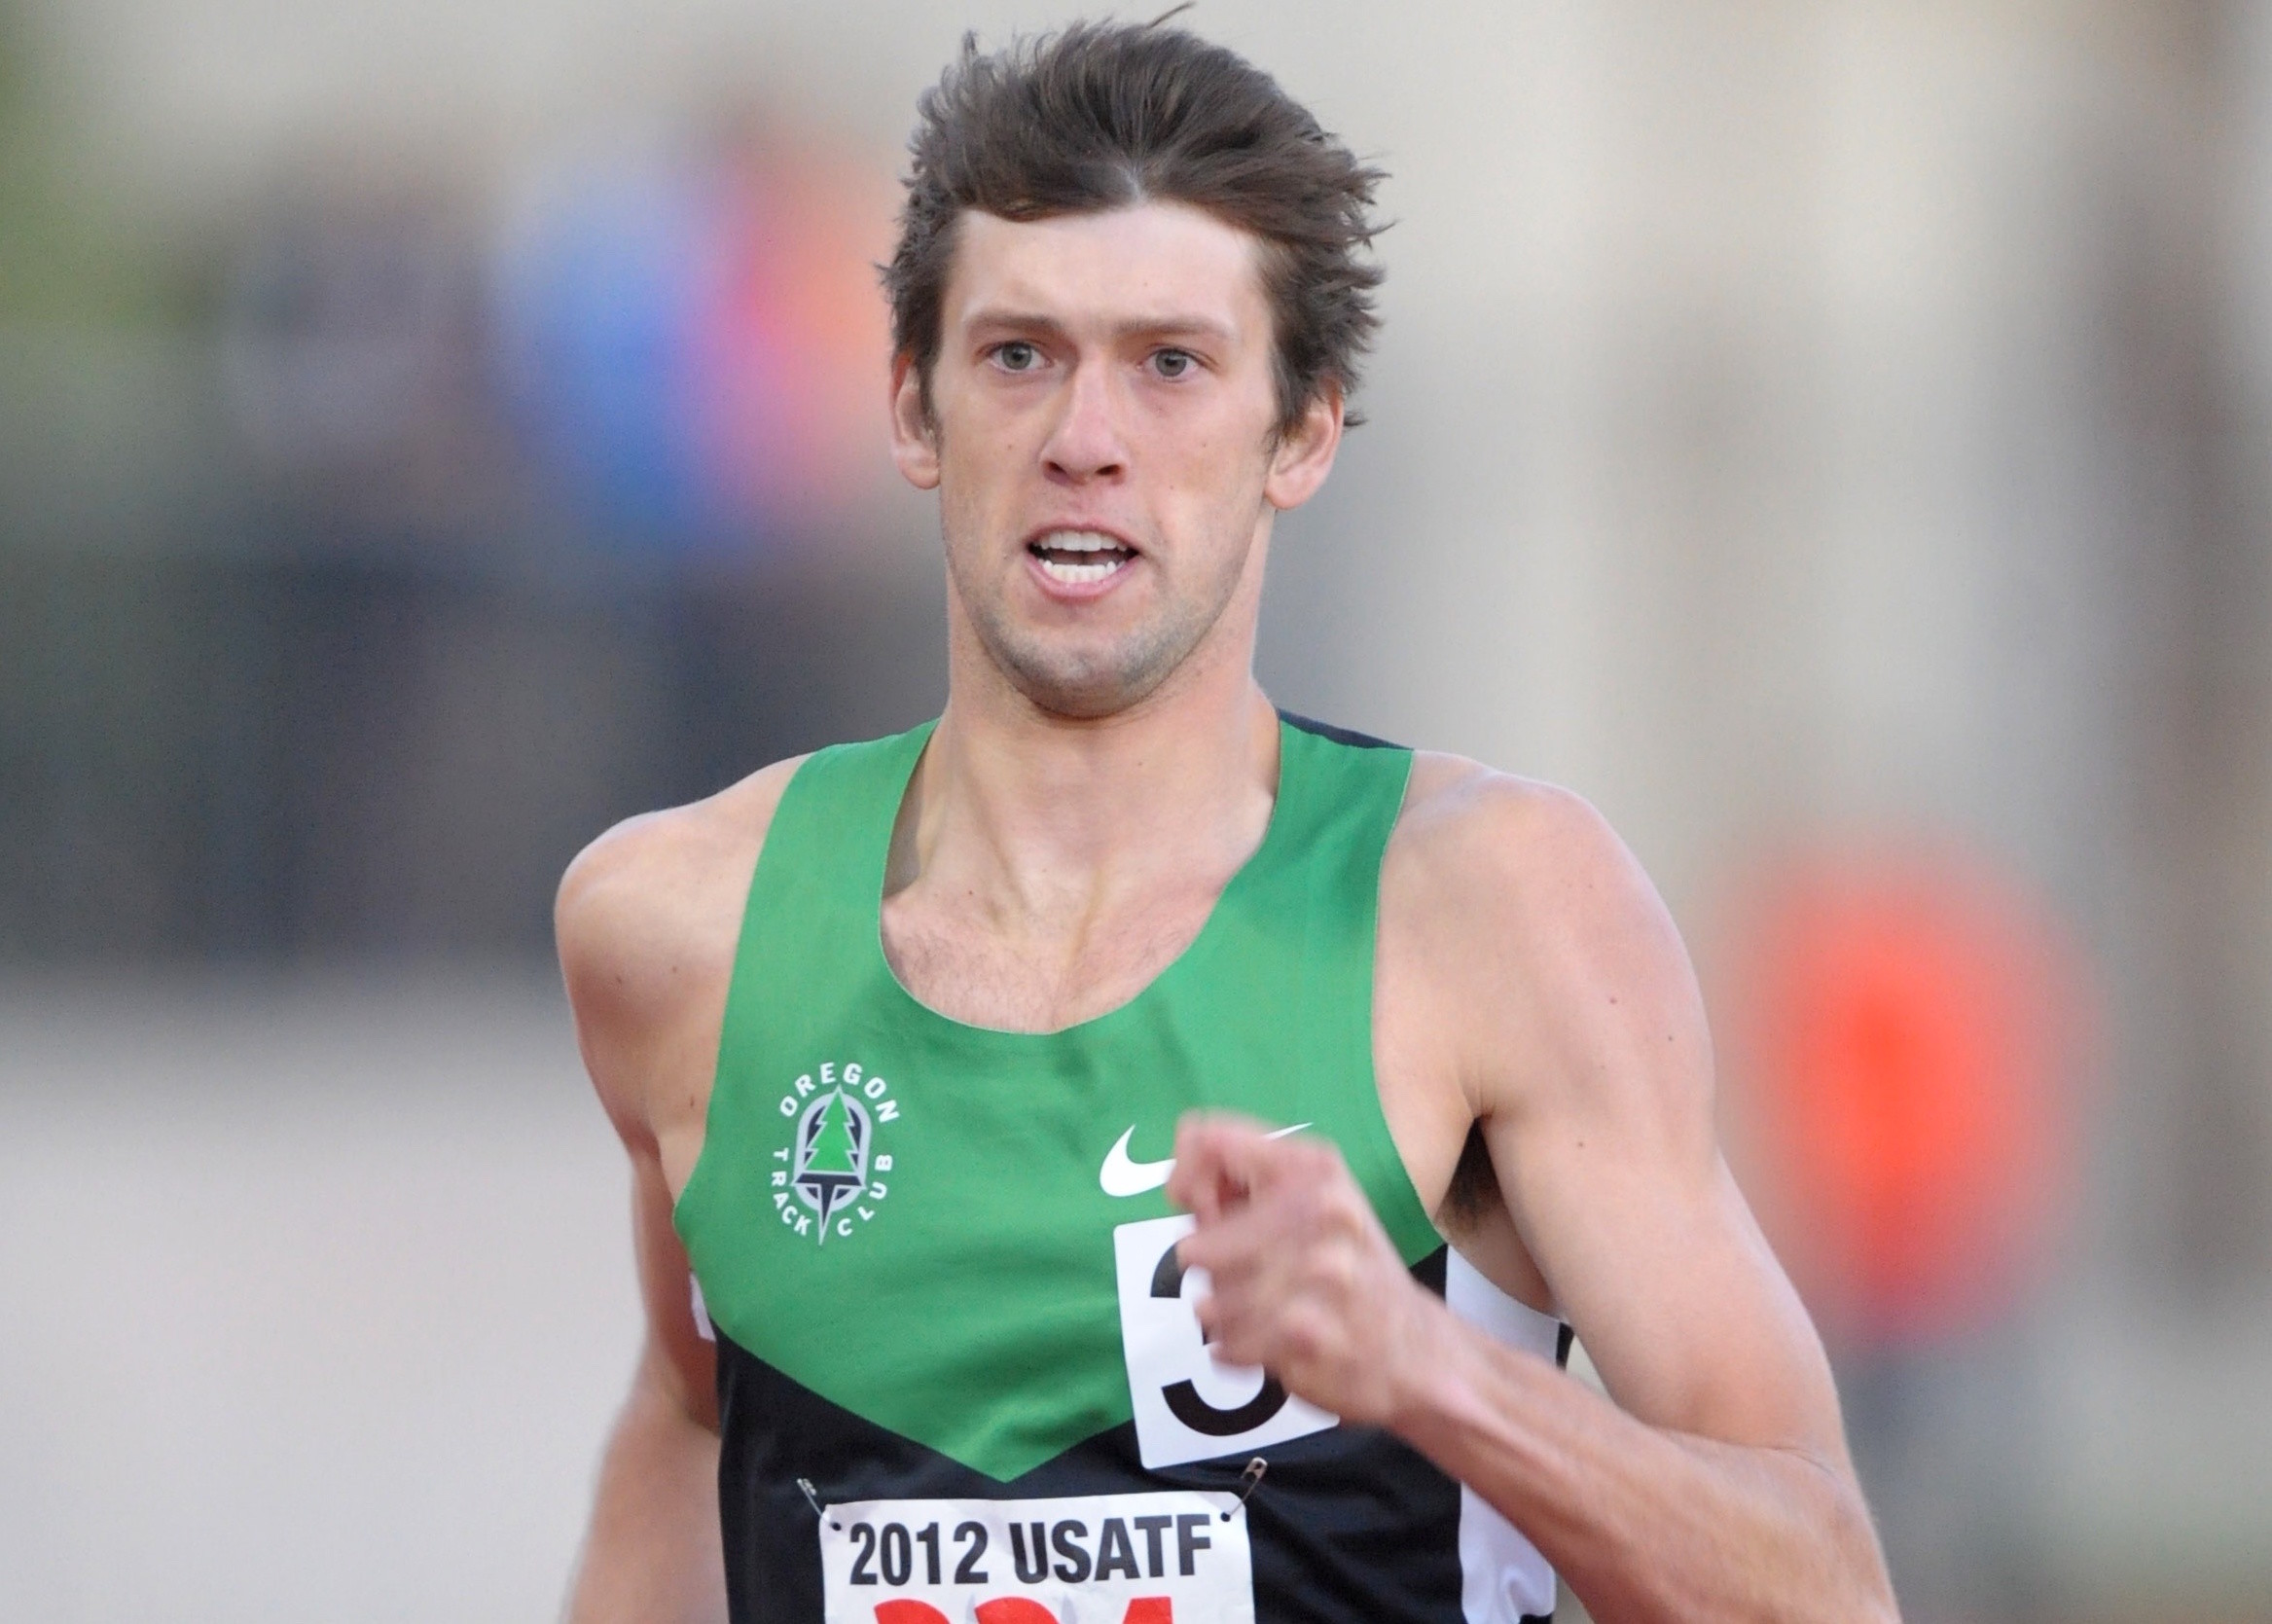 Wheating Says Farewell To Professional Running